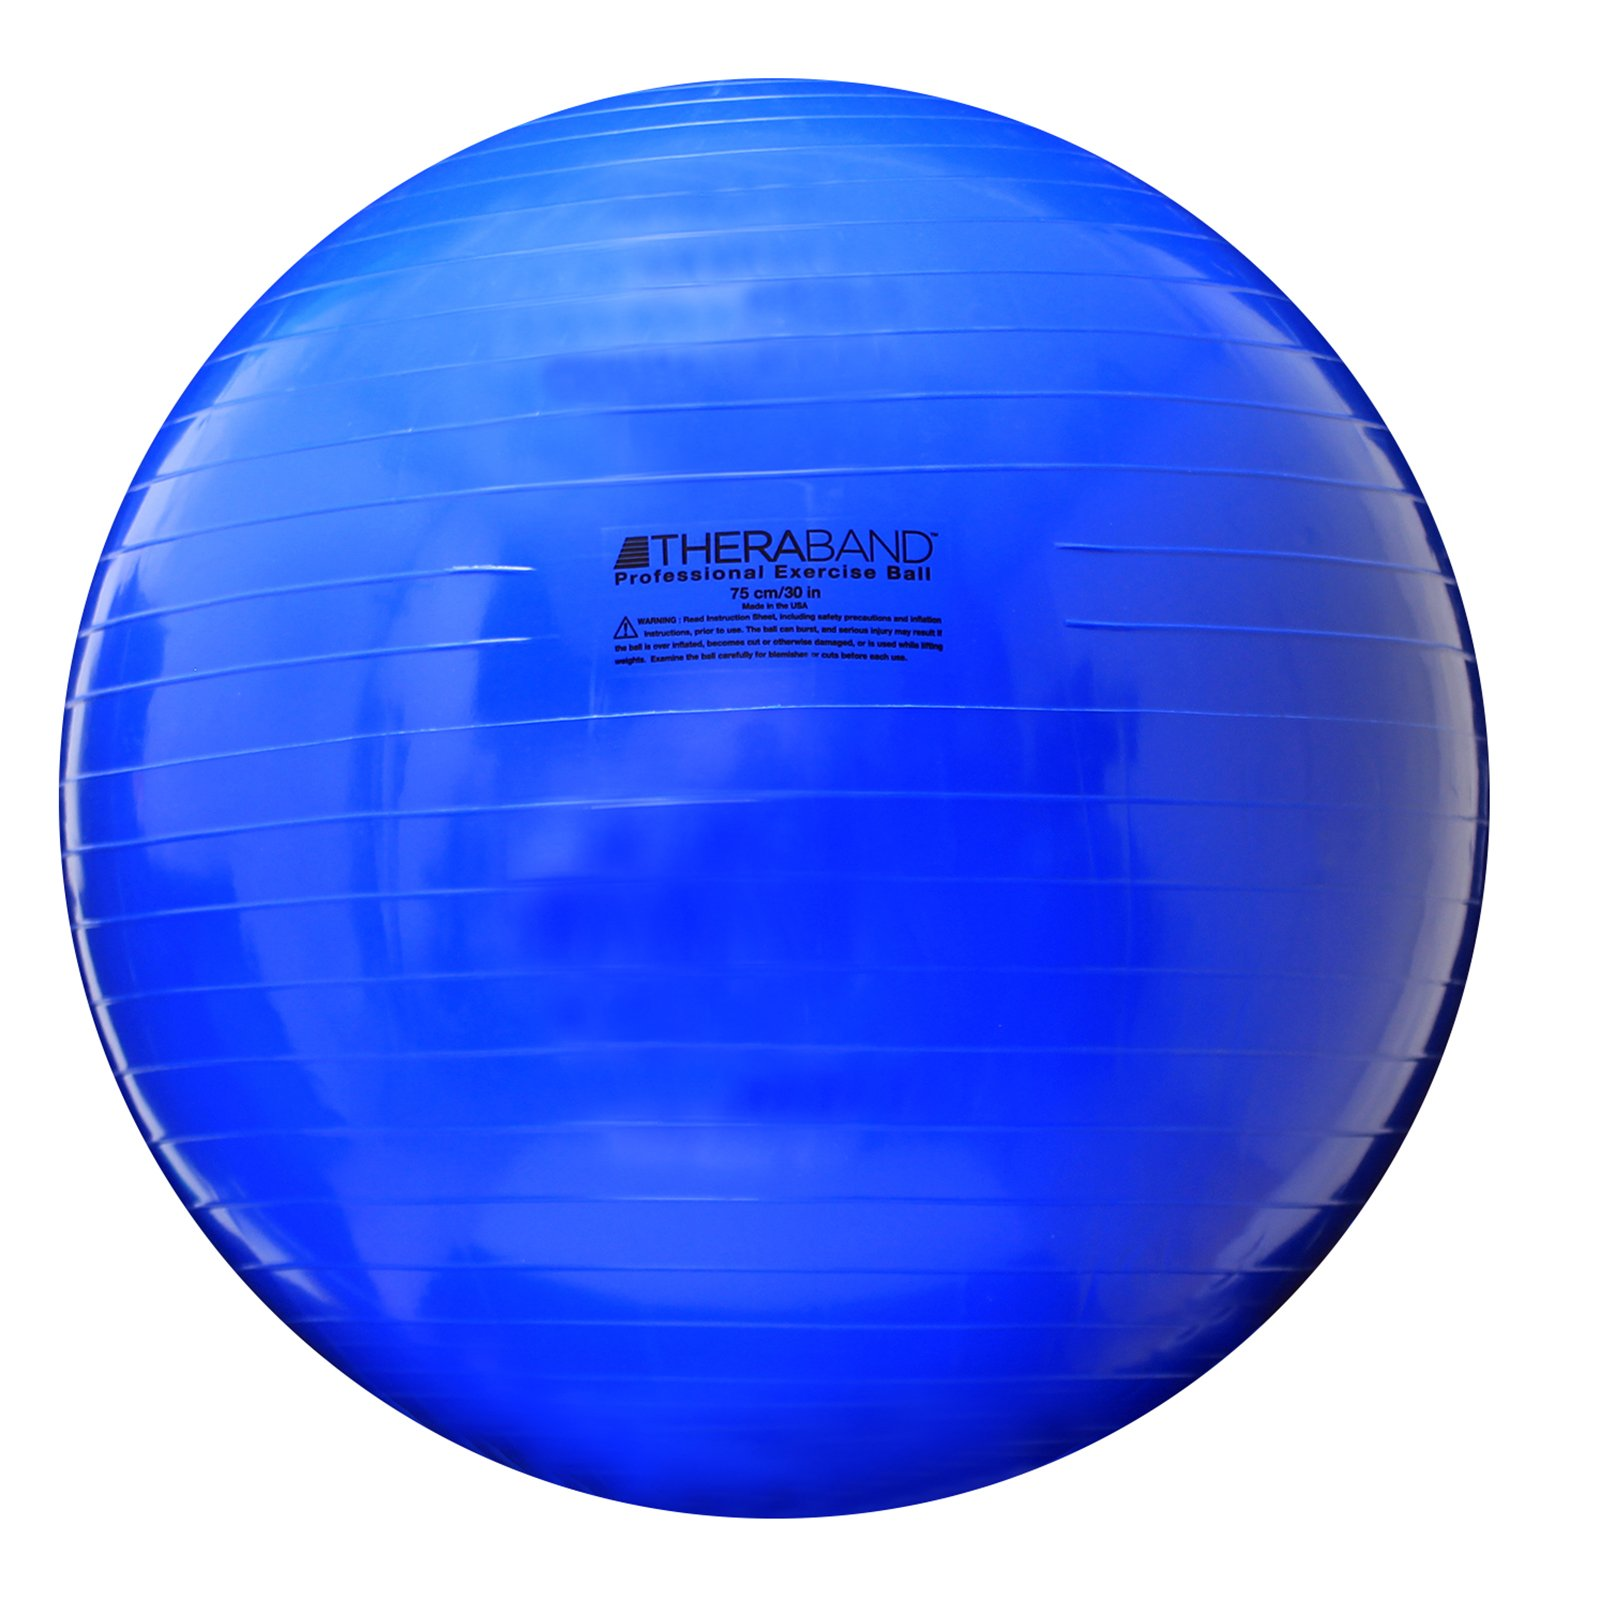 TheraBand Exercise Ball, Stability Ball with 75 cm Diameter for Athletes 6'2 to 6'8 Tall, Standard Fitness Ball for Posture, Balance, Yoga, Pilates, Core, Rehab, Blue